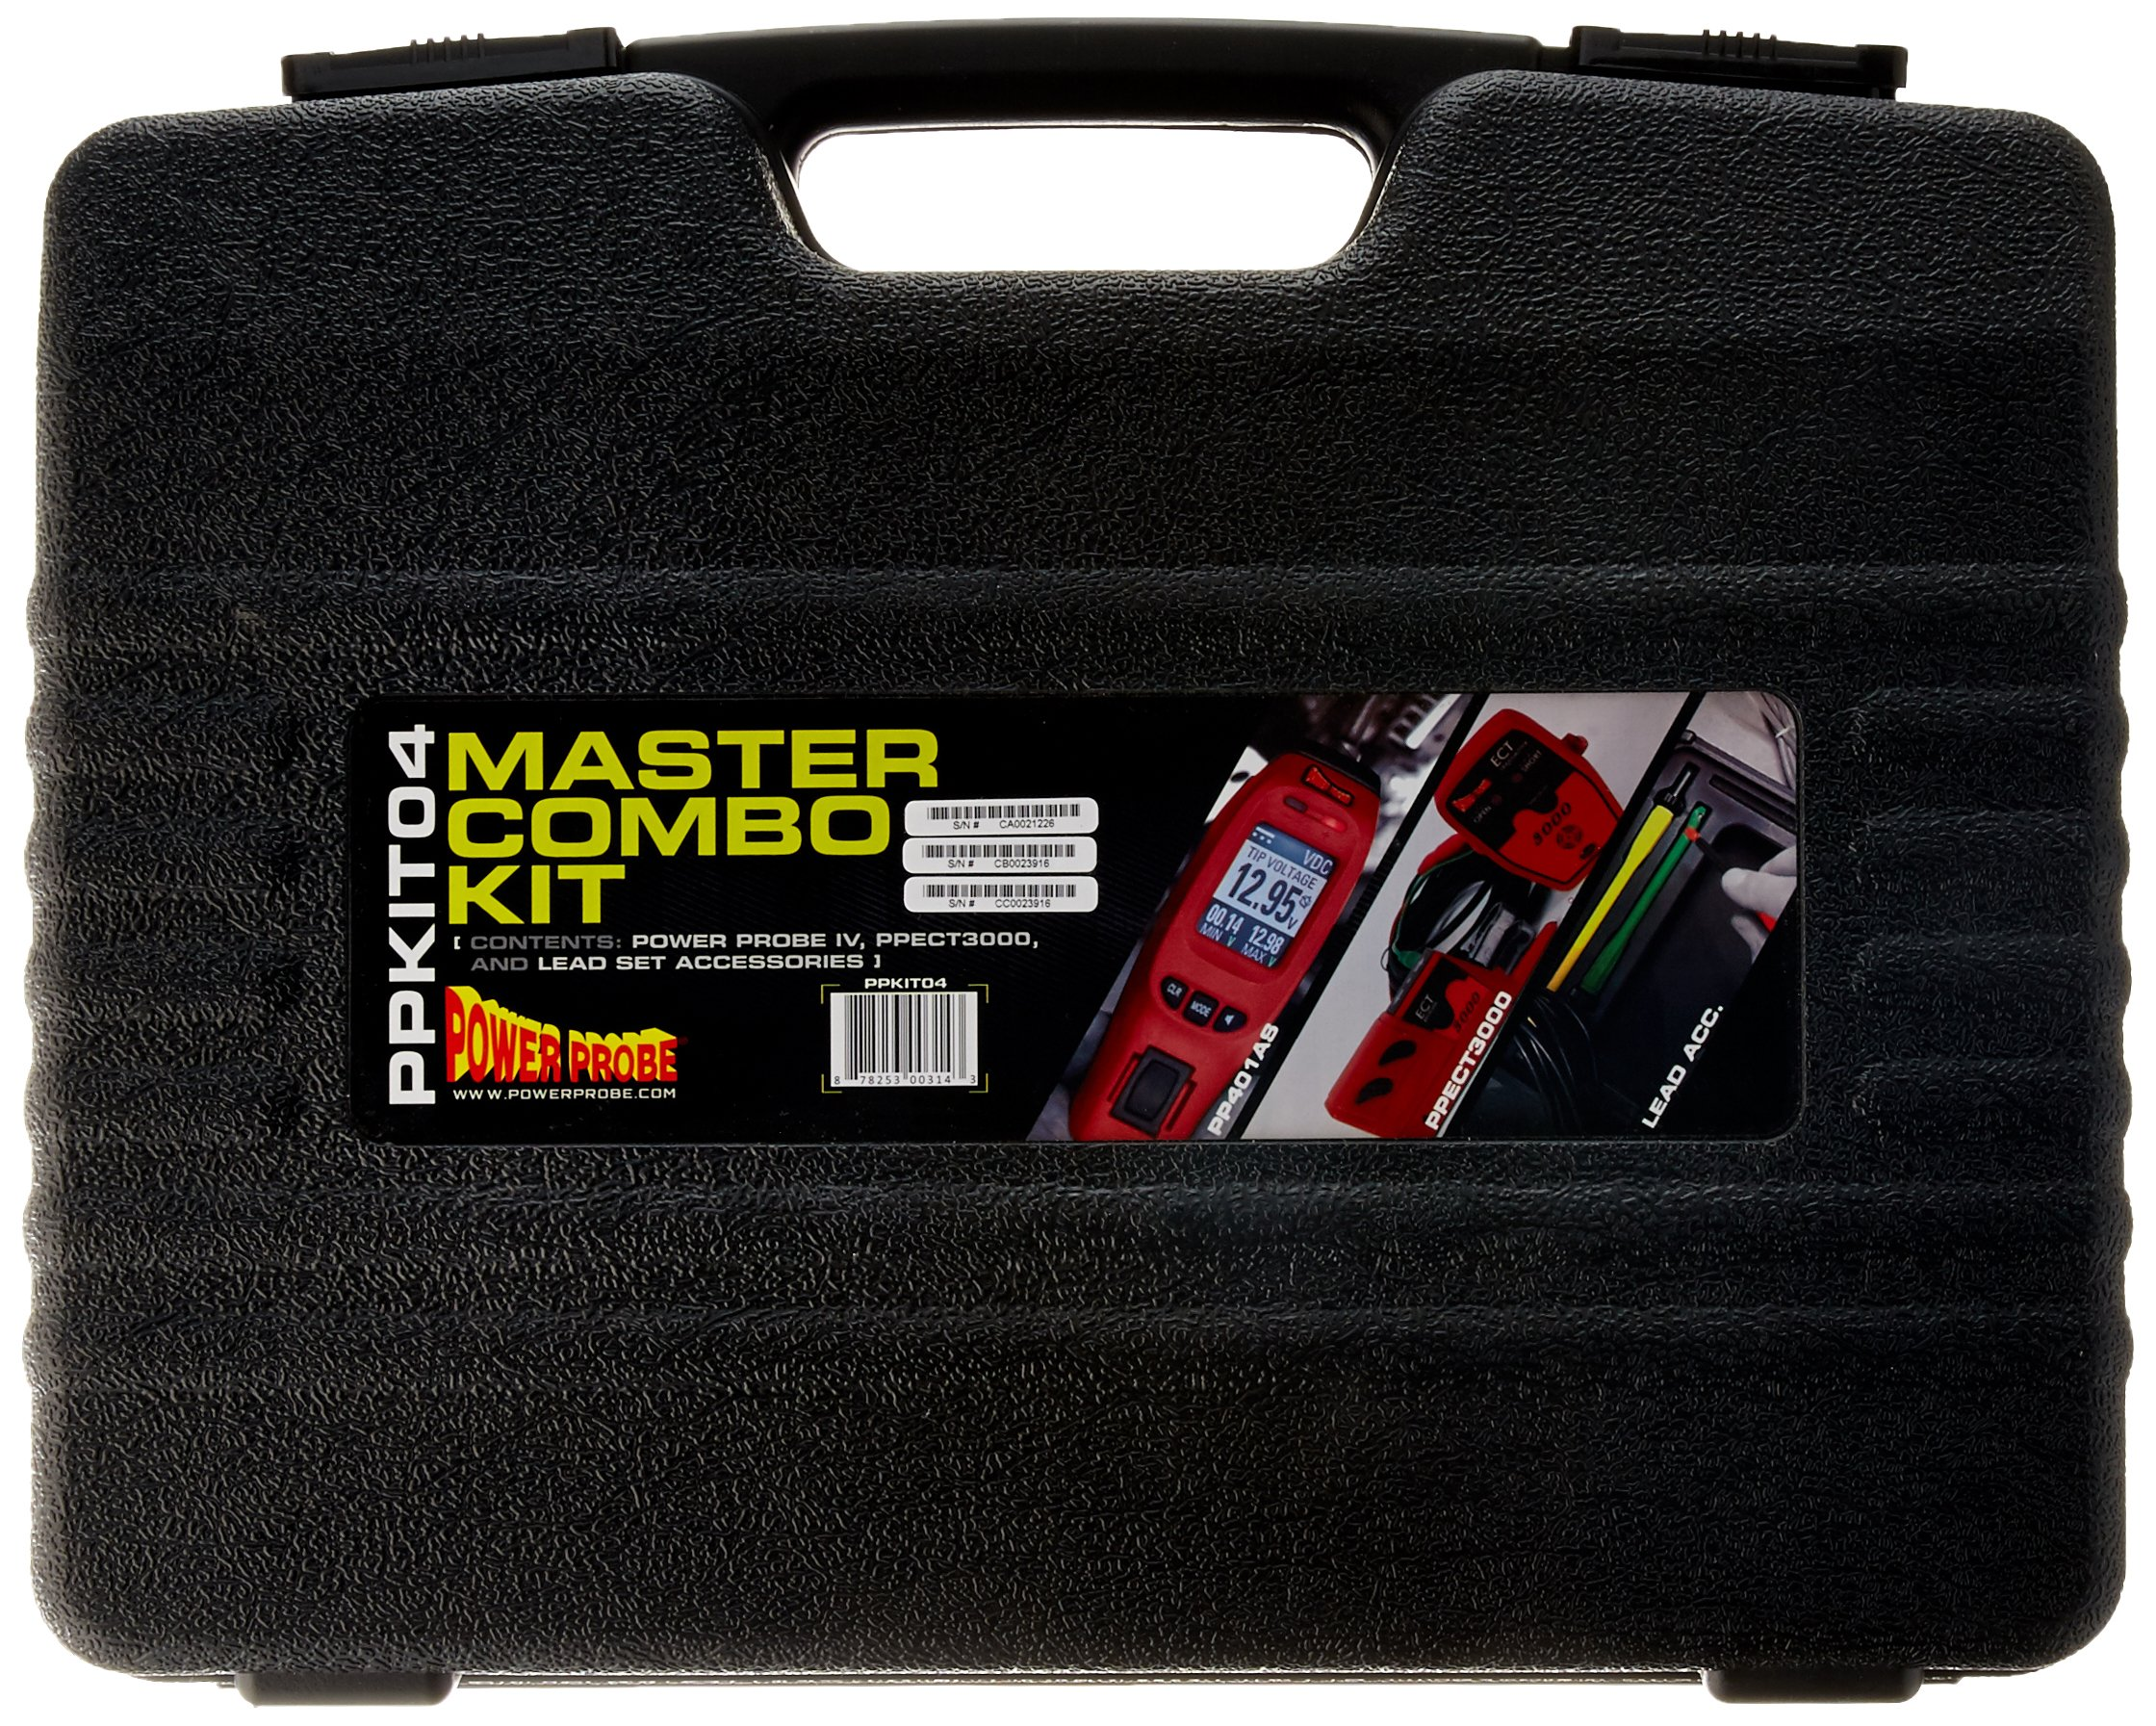 POWER PROBE IV Master Combo Kit - Red (PPKIT04) Includes Power Probe IV with PPECT3000 and Accessories by Power Probe (Image #3)